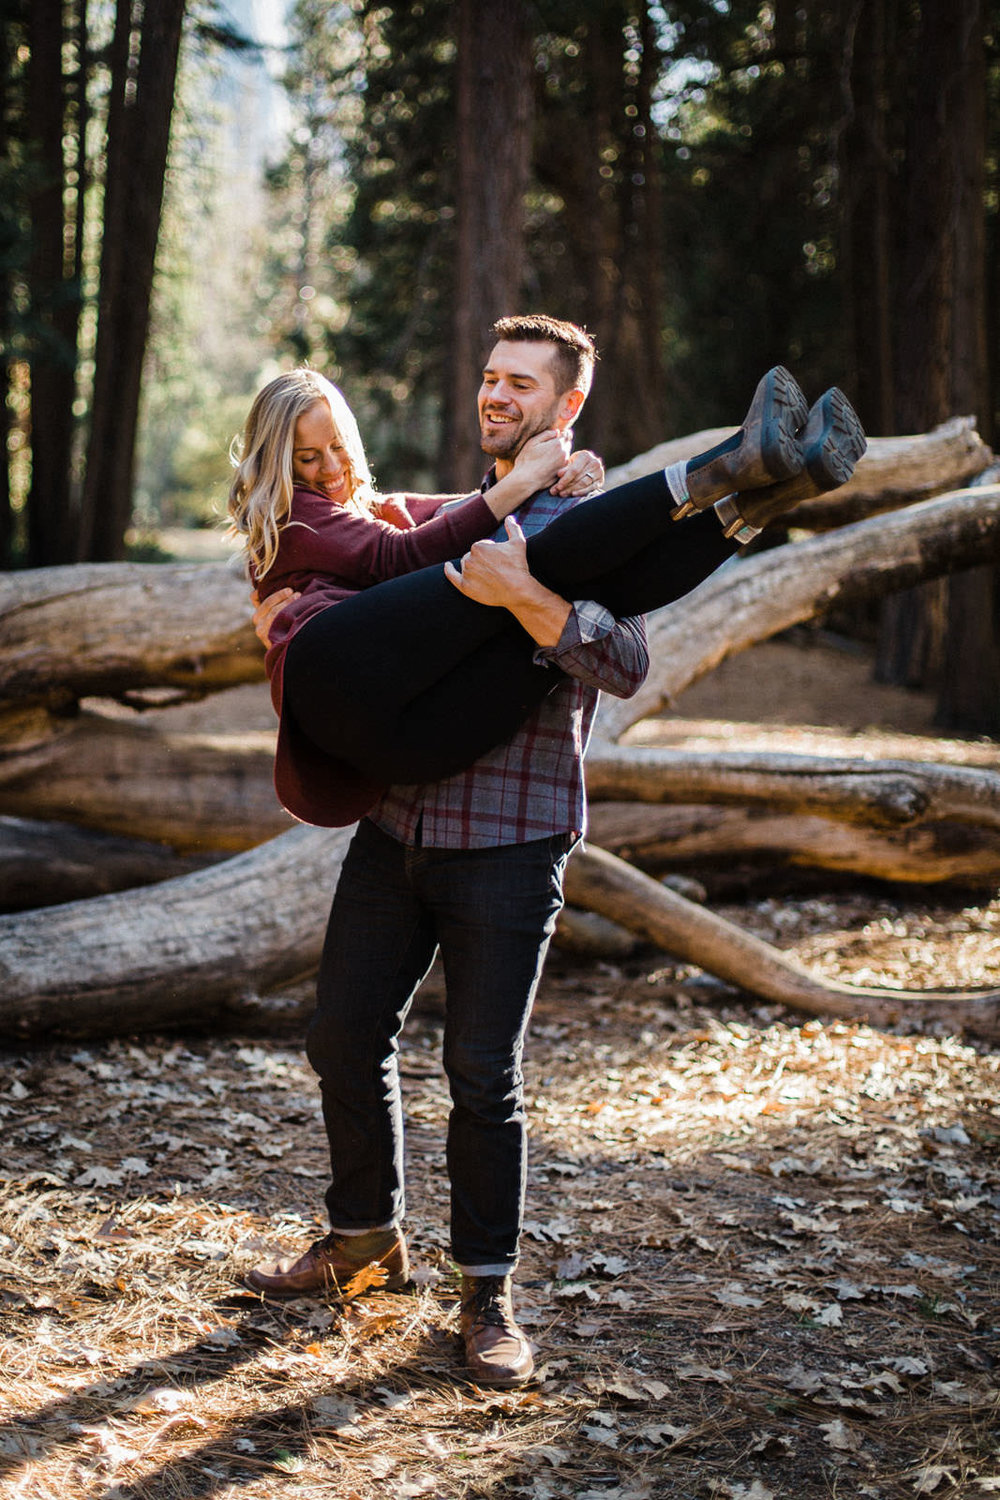 yosemite-adventure-elopement-photographer-daniela-vallant-yosemite-wedding-photo-national-park